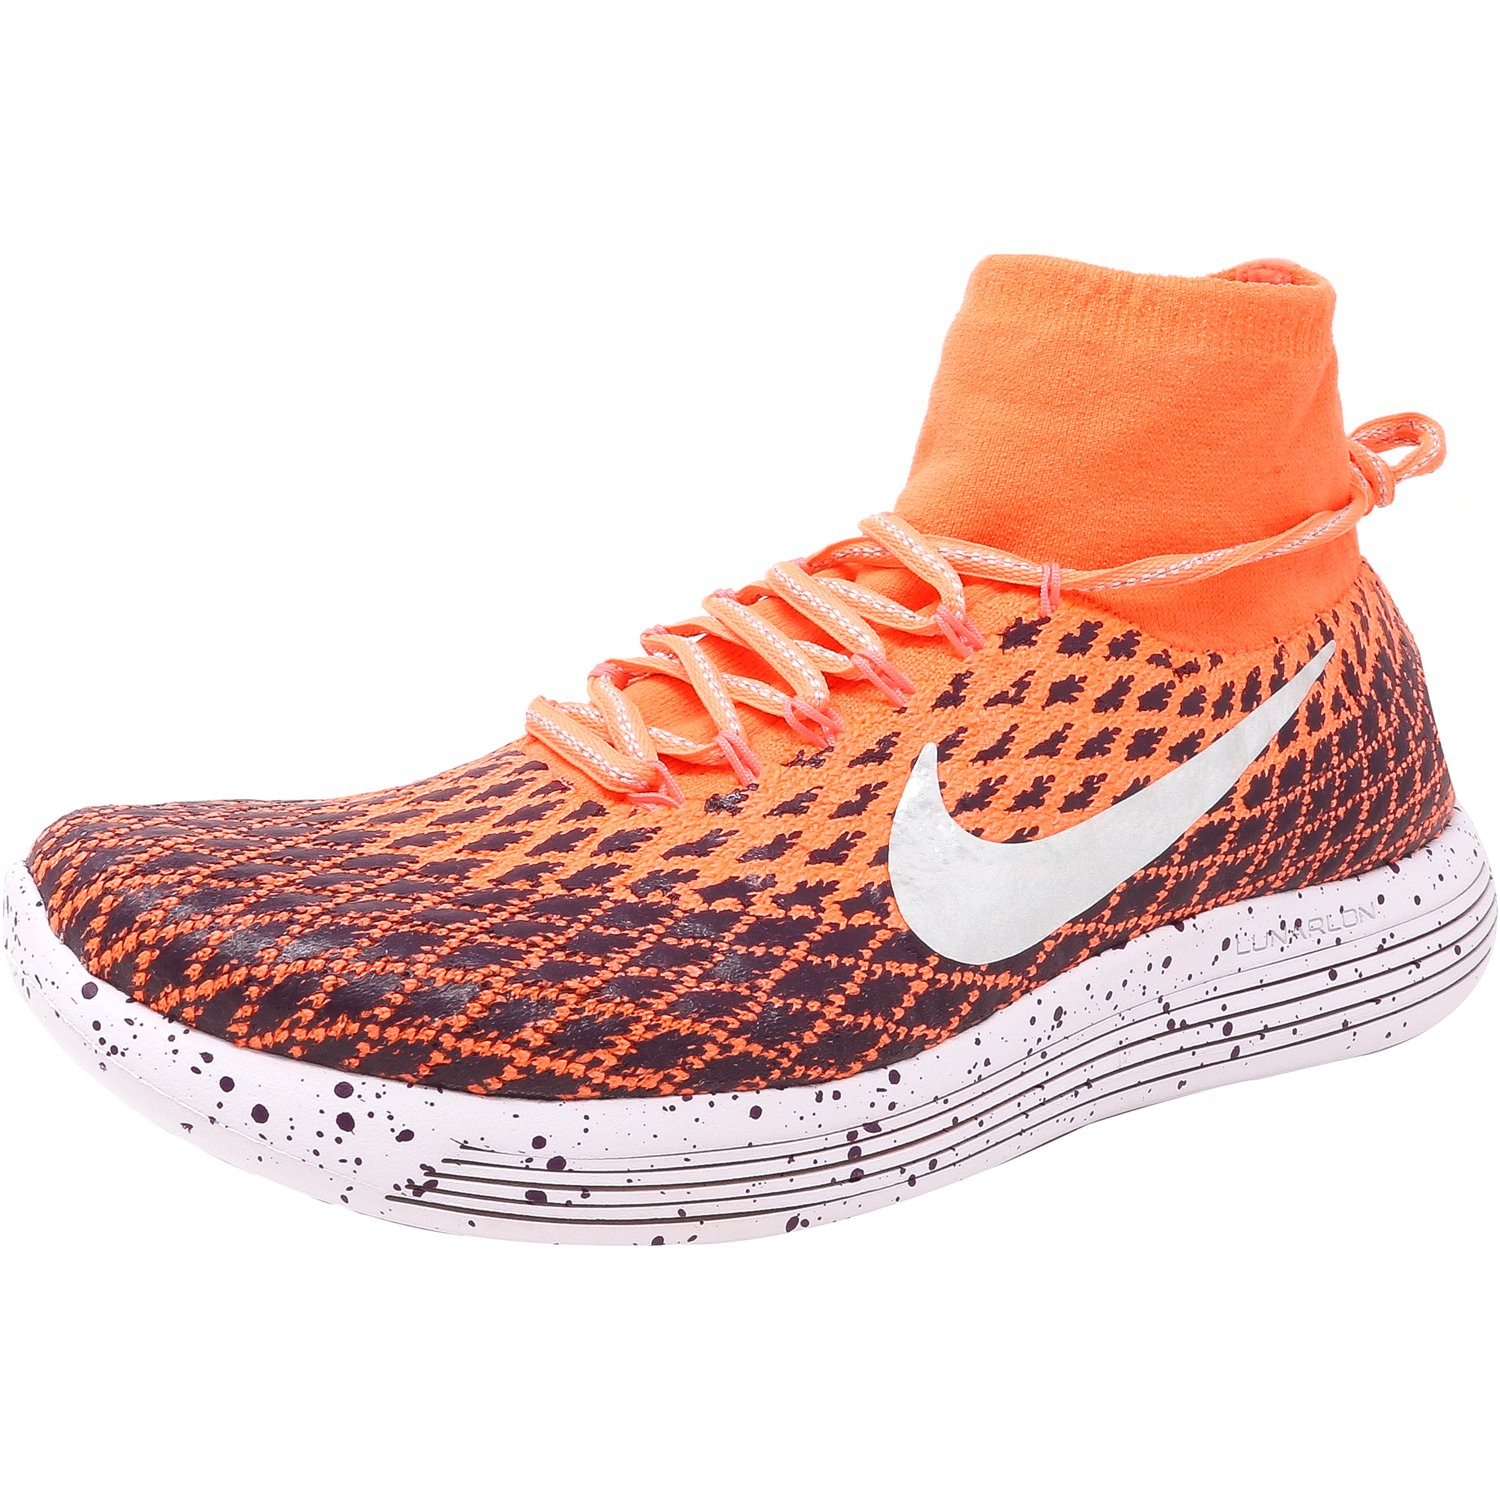 3edf1f709ac Nike Women s Lunarepic Flyknit Shield Bright Mango   Metallic Silver  Ankle-High Fabric Running Shoe - 11.5M